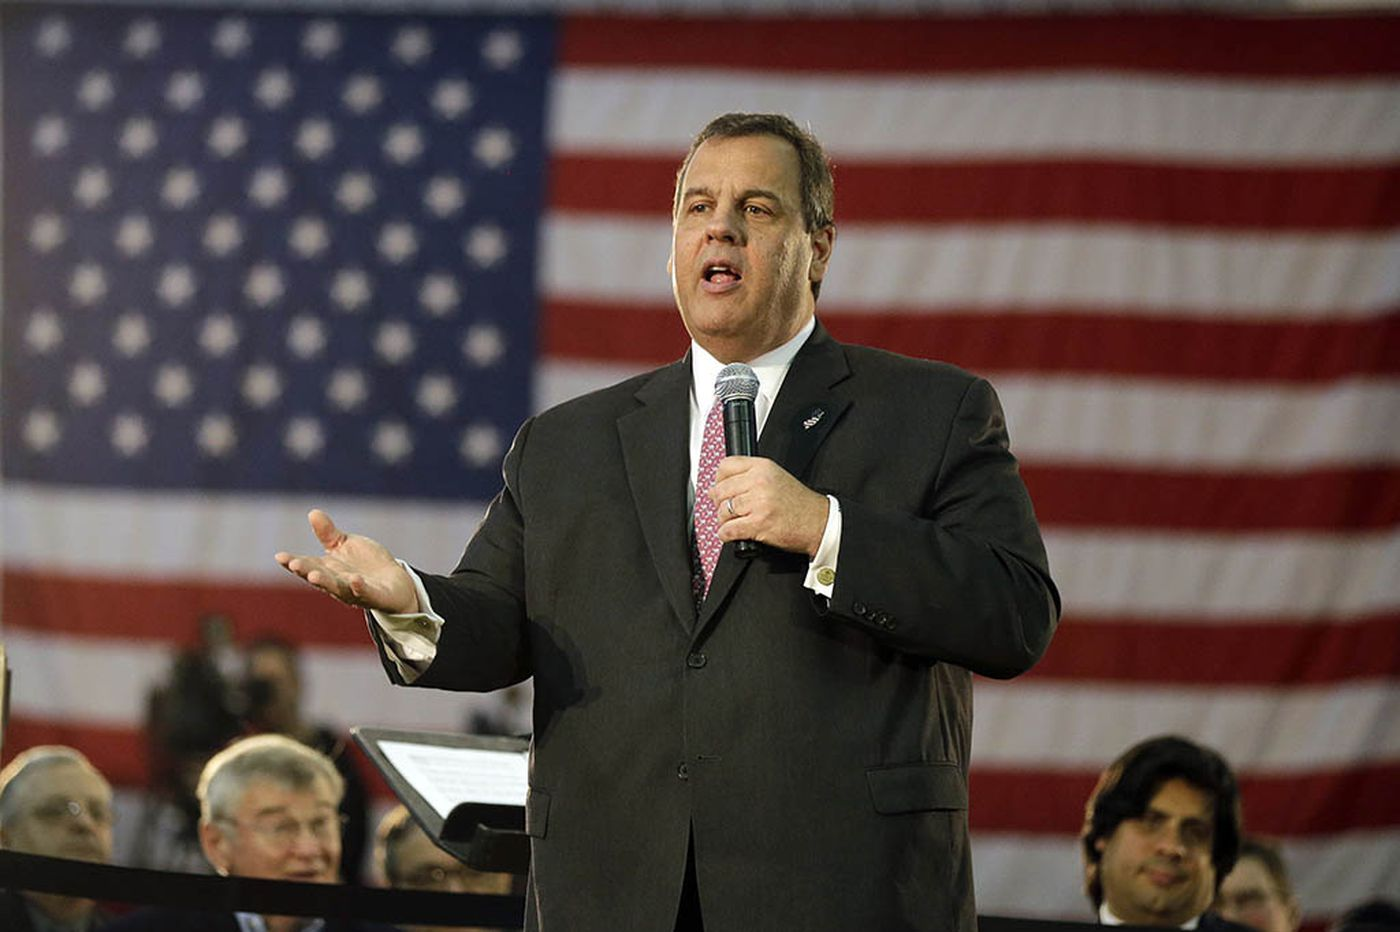 Christie-for-president supporters form super PAC